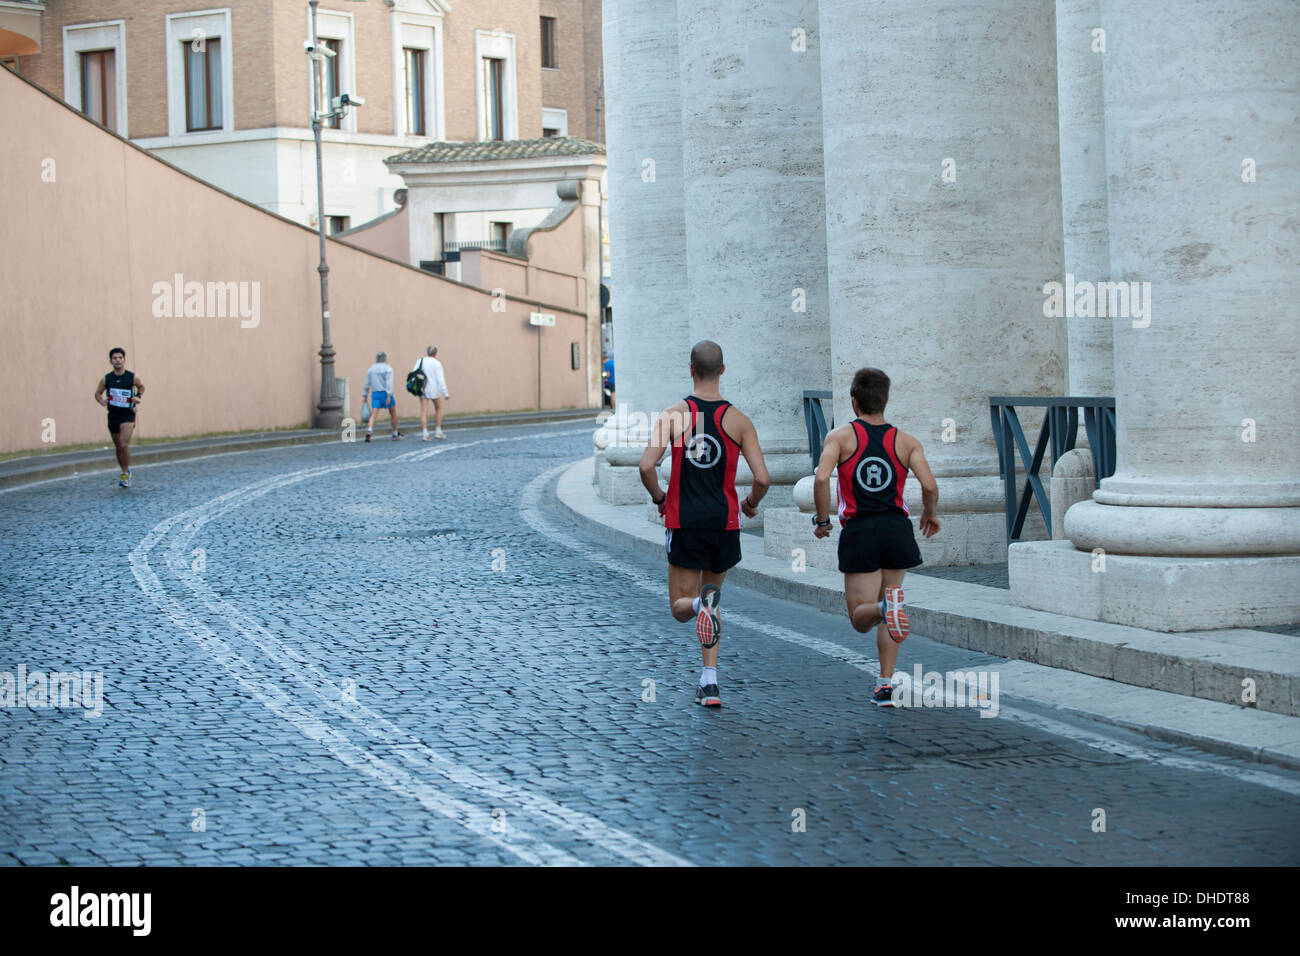 Athletes do warm up before race in Vatican city - Stock Image